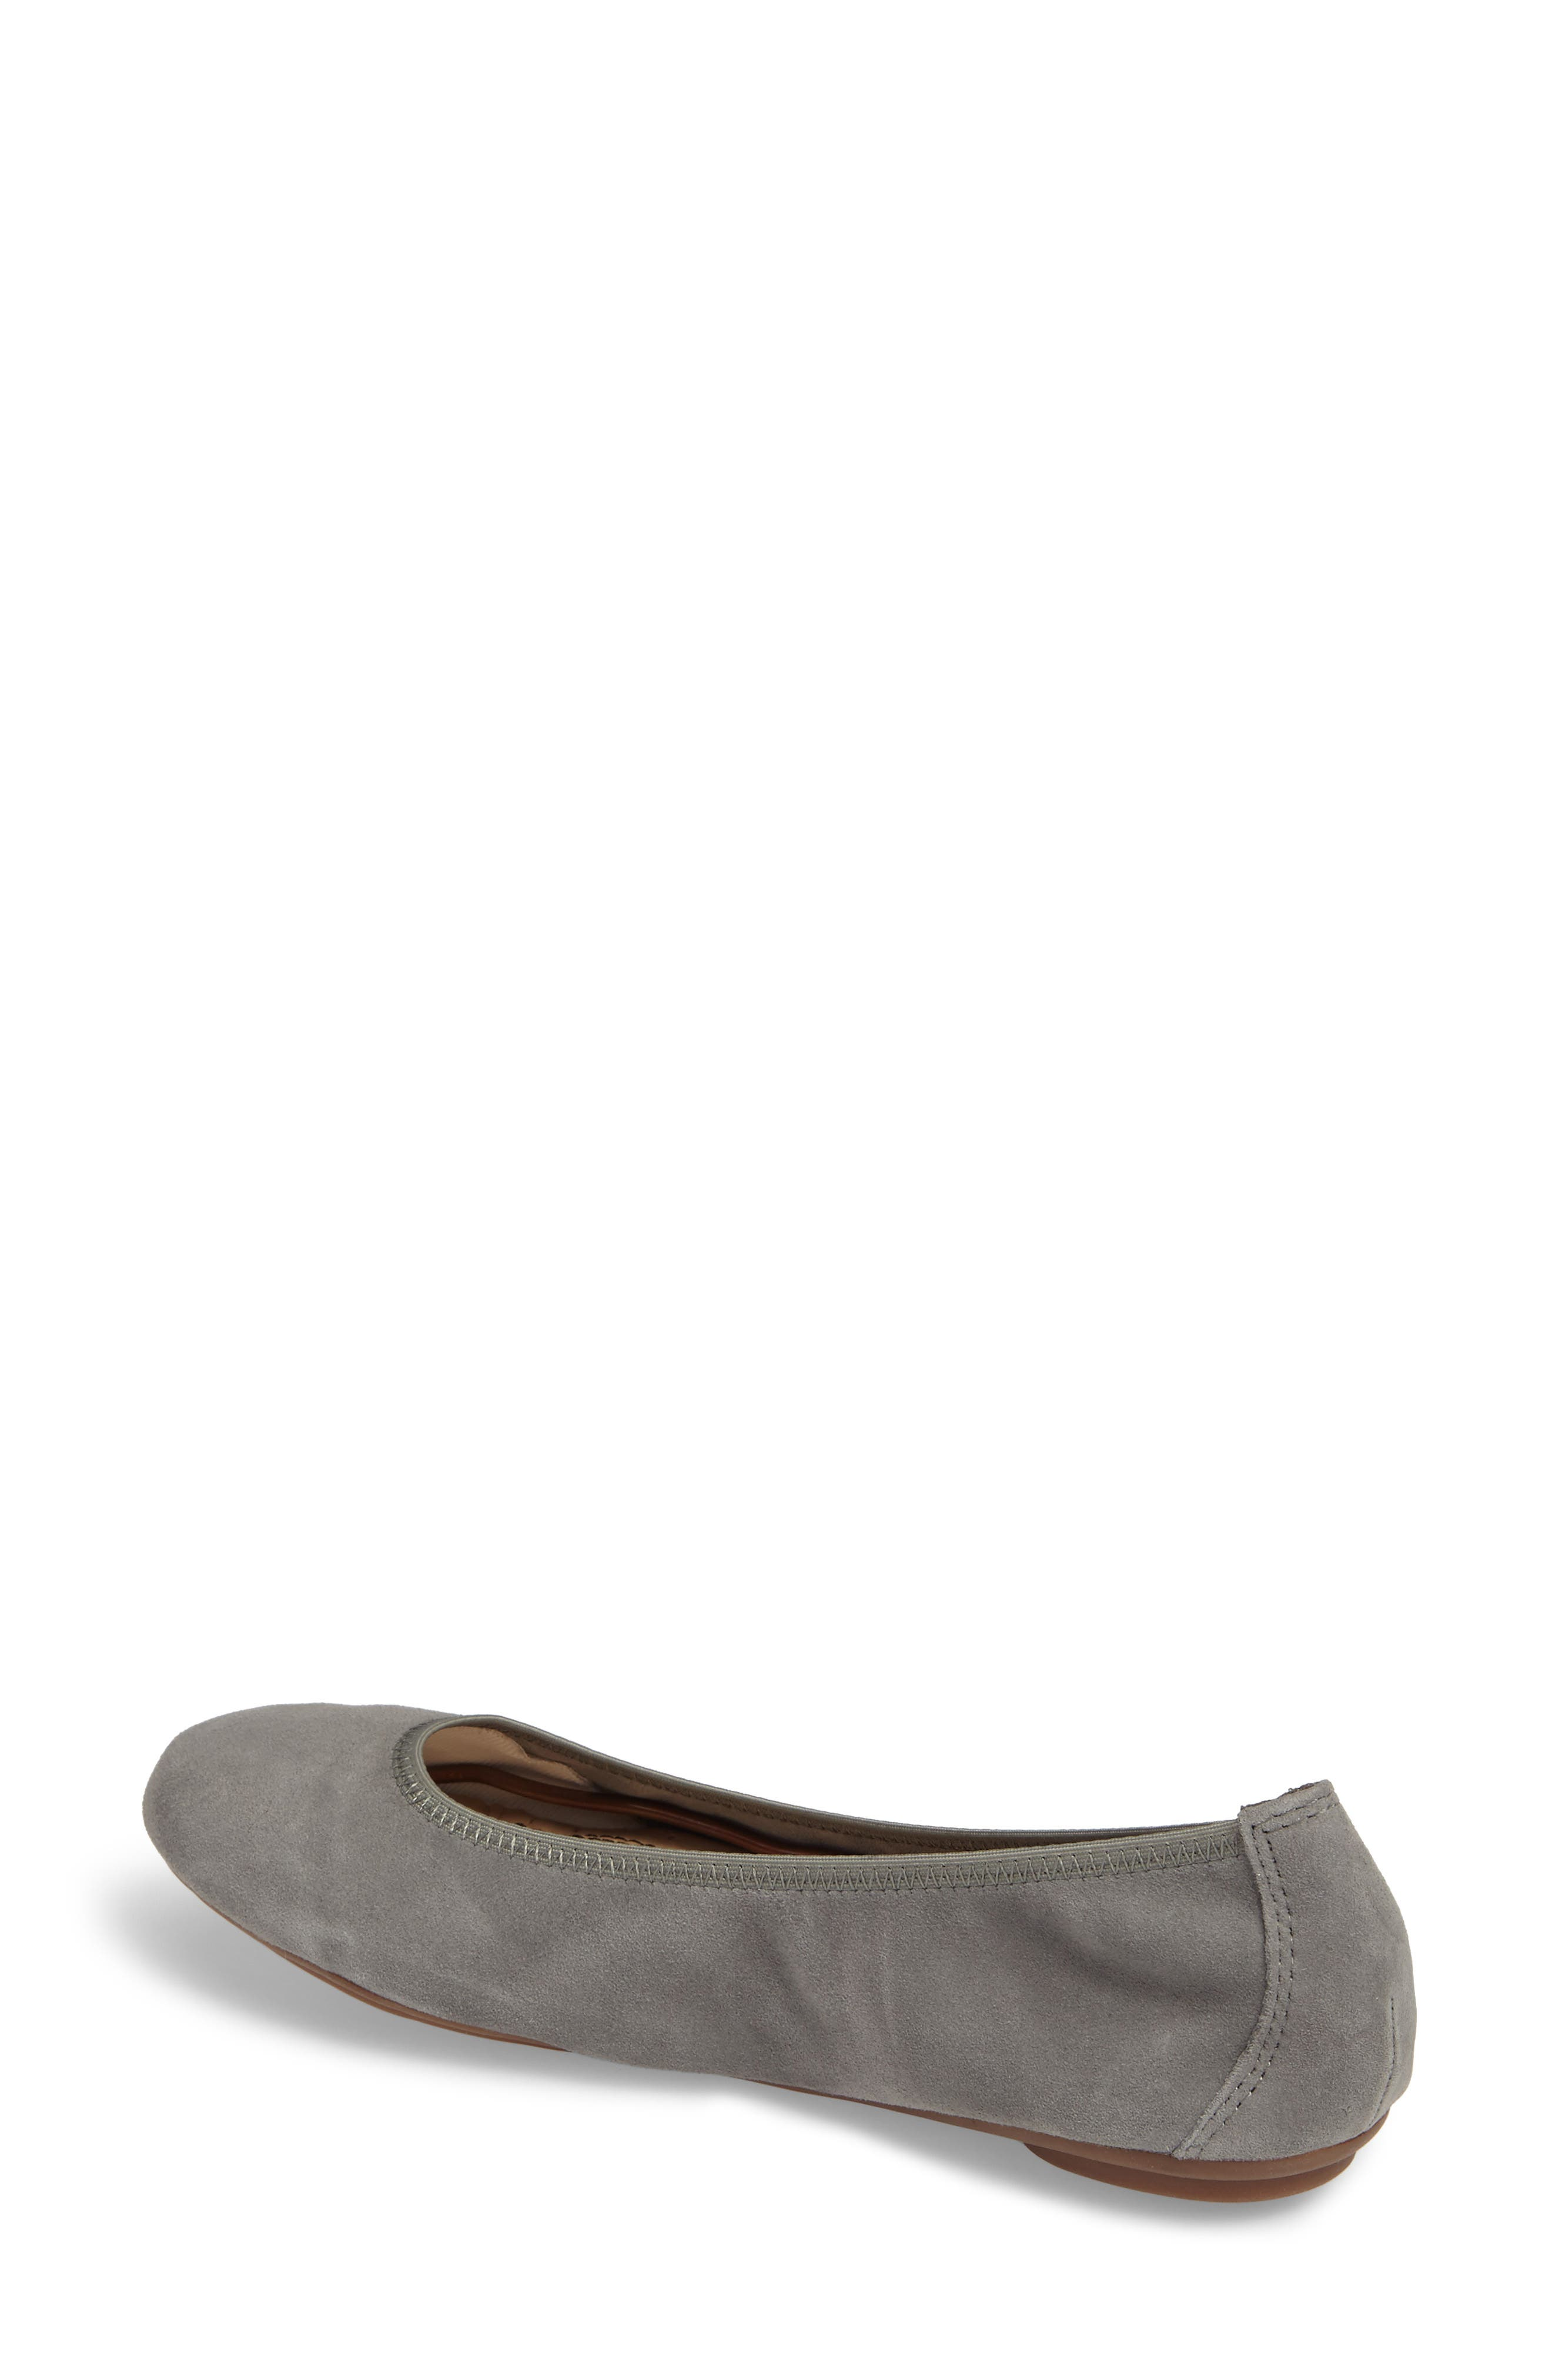 'Chaste' Ballet Flat,                             Alternate thumbnail 2, color,                             Dusty Green Suede